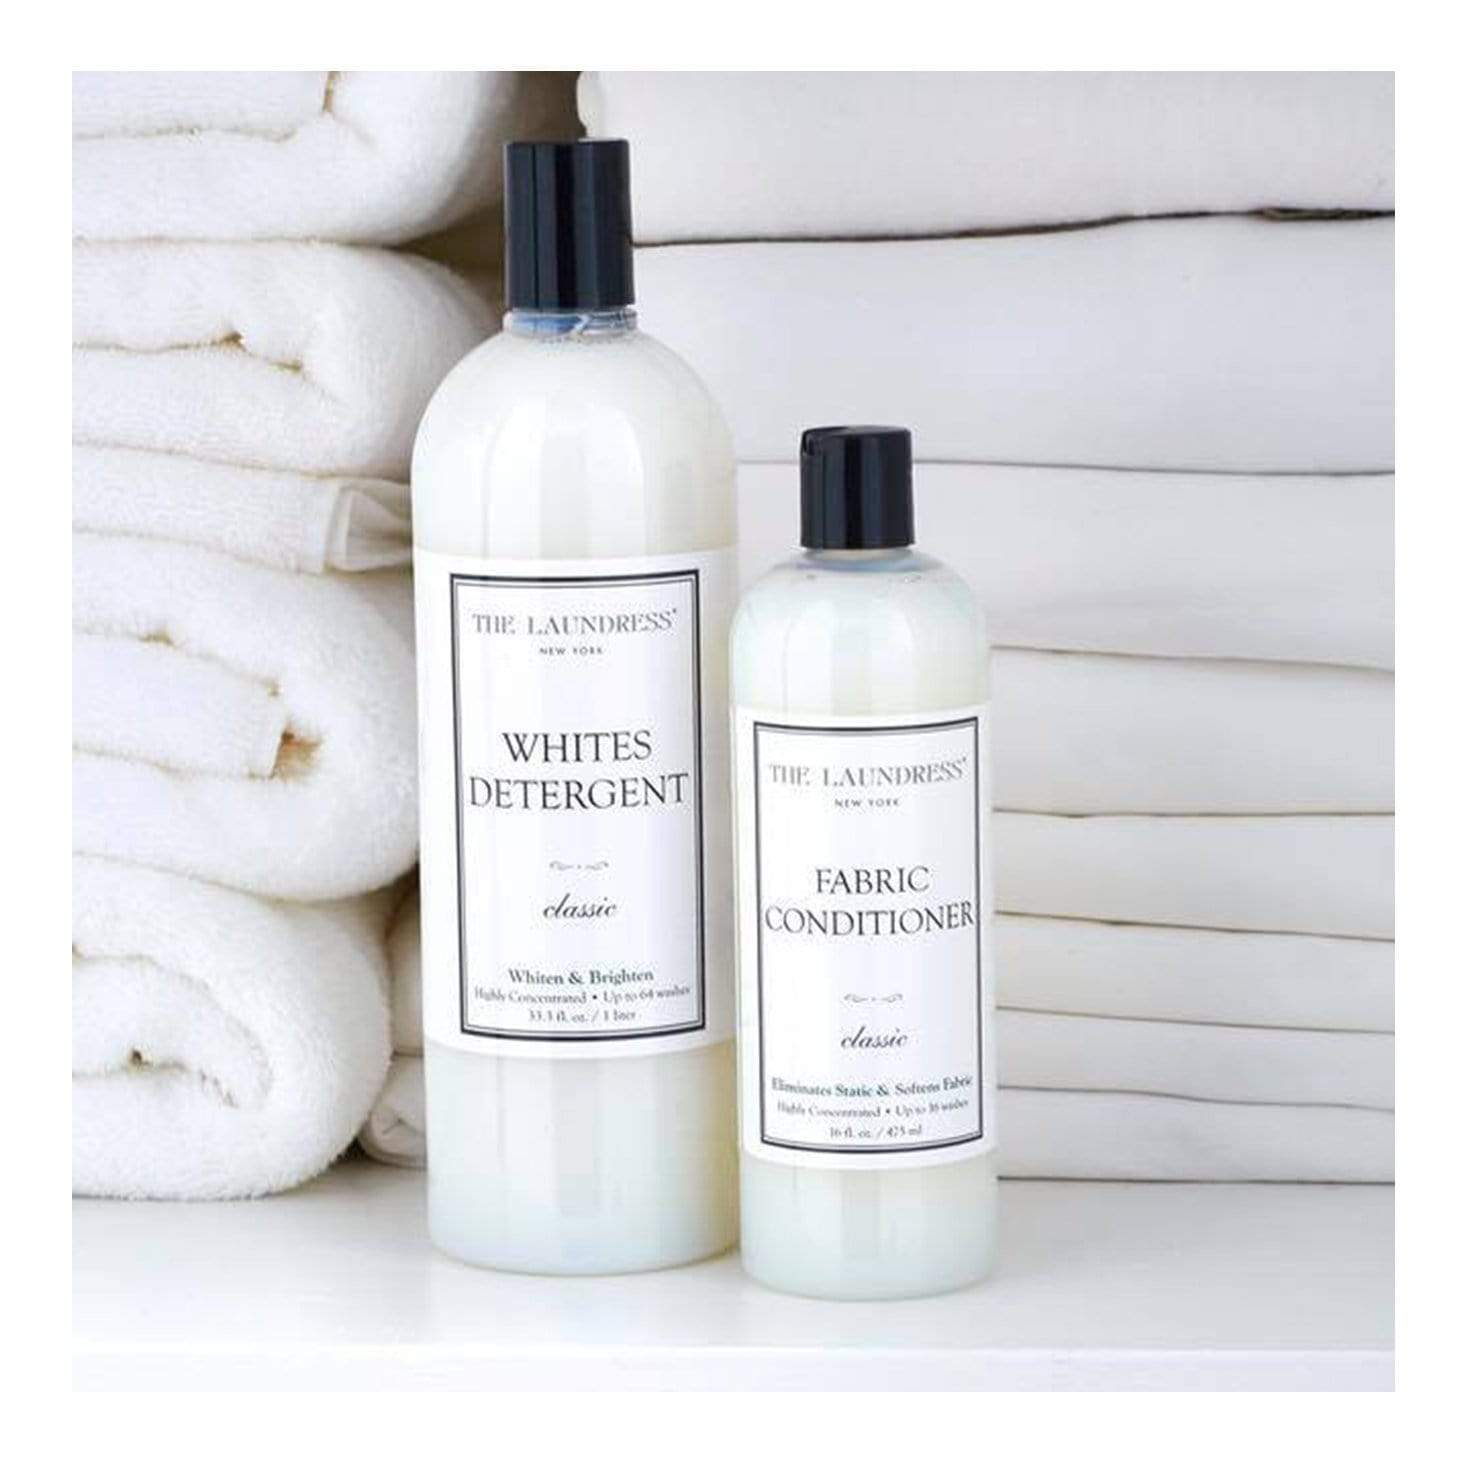 FABRIC CONDITIONER 475ML - CLASSIC - THE LAUNDRESS